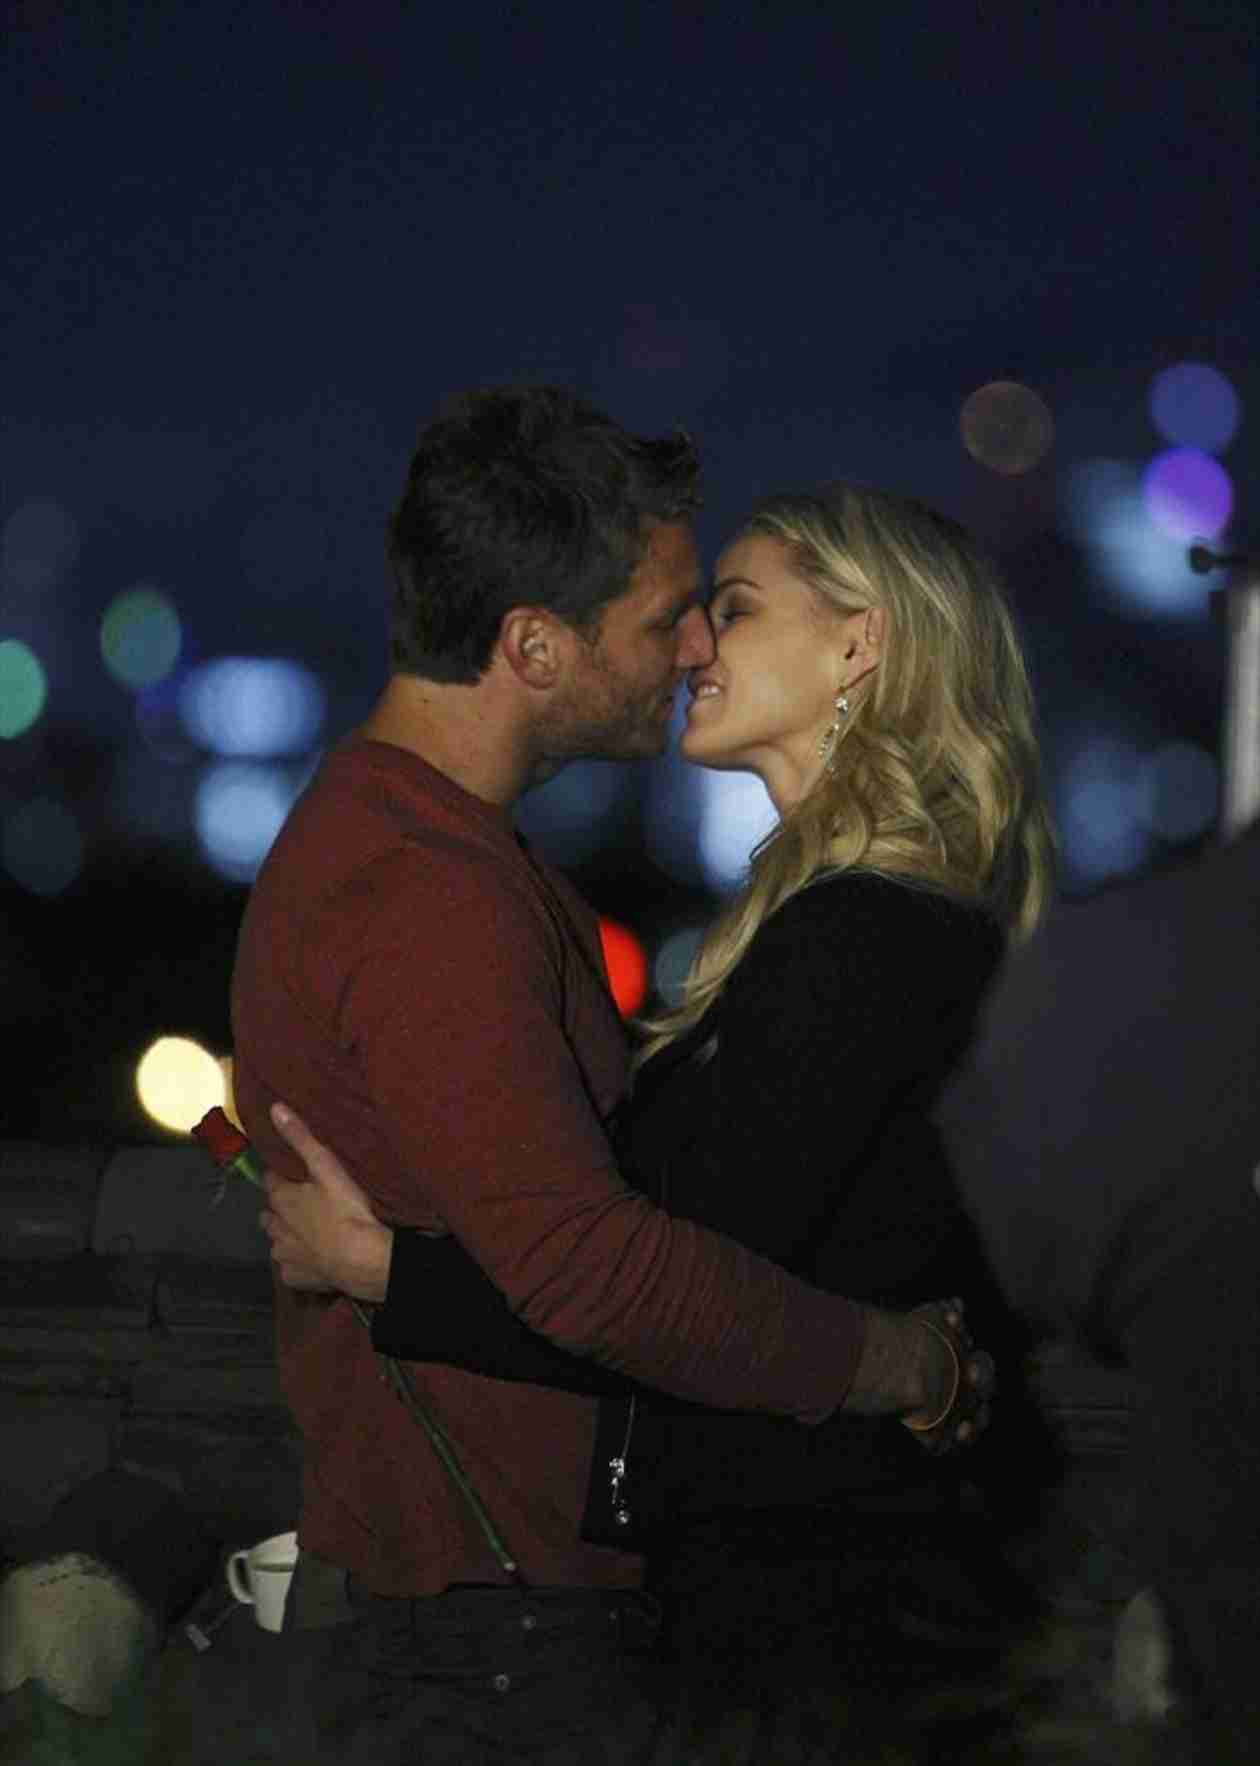 Is Bachelor 2014's Nikki Ferrell Really a Villain? Ali Fedotowsky Says…